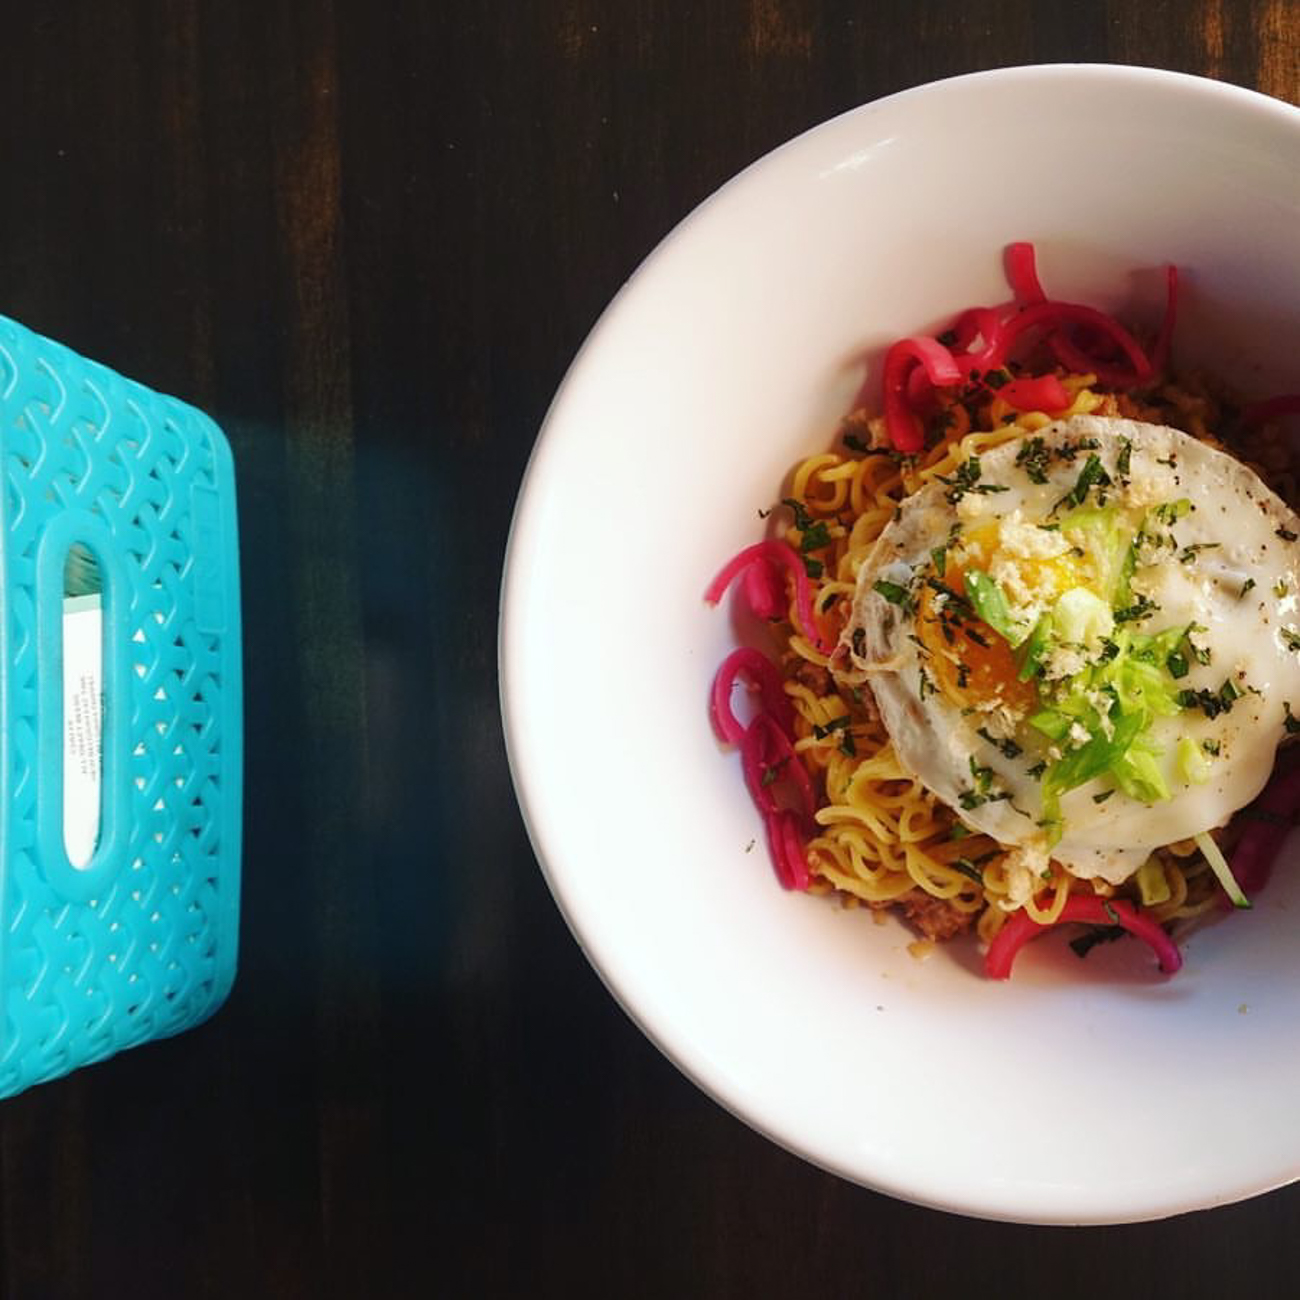 Miso Pork Mazemen: yakisoba noodles, fried egg, pickled red onions, green onions, cucumbers, thai basil, and chicharon garnish / Image courtesy of Quan Hapa // Published: 1.10.17